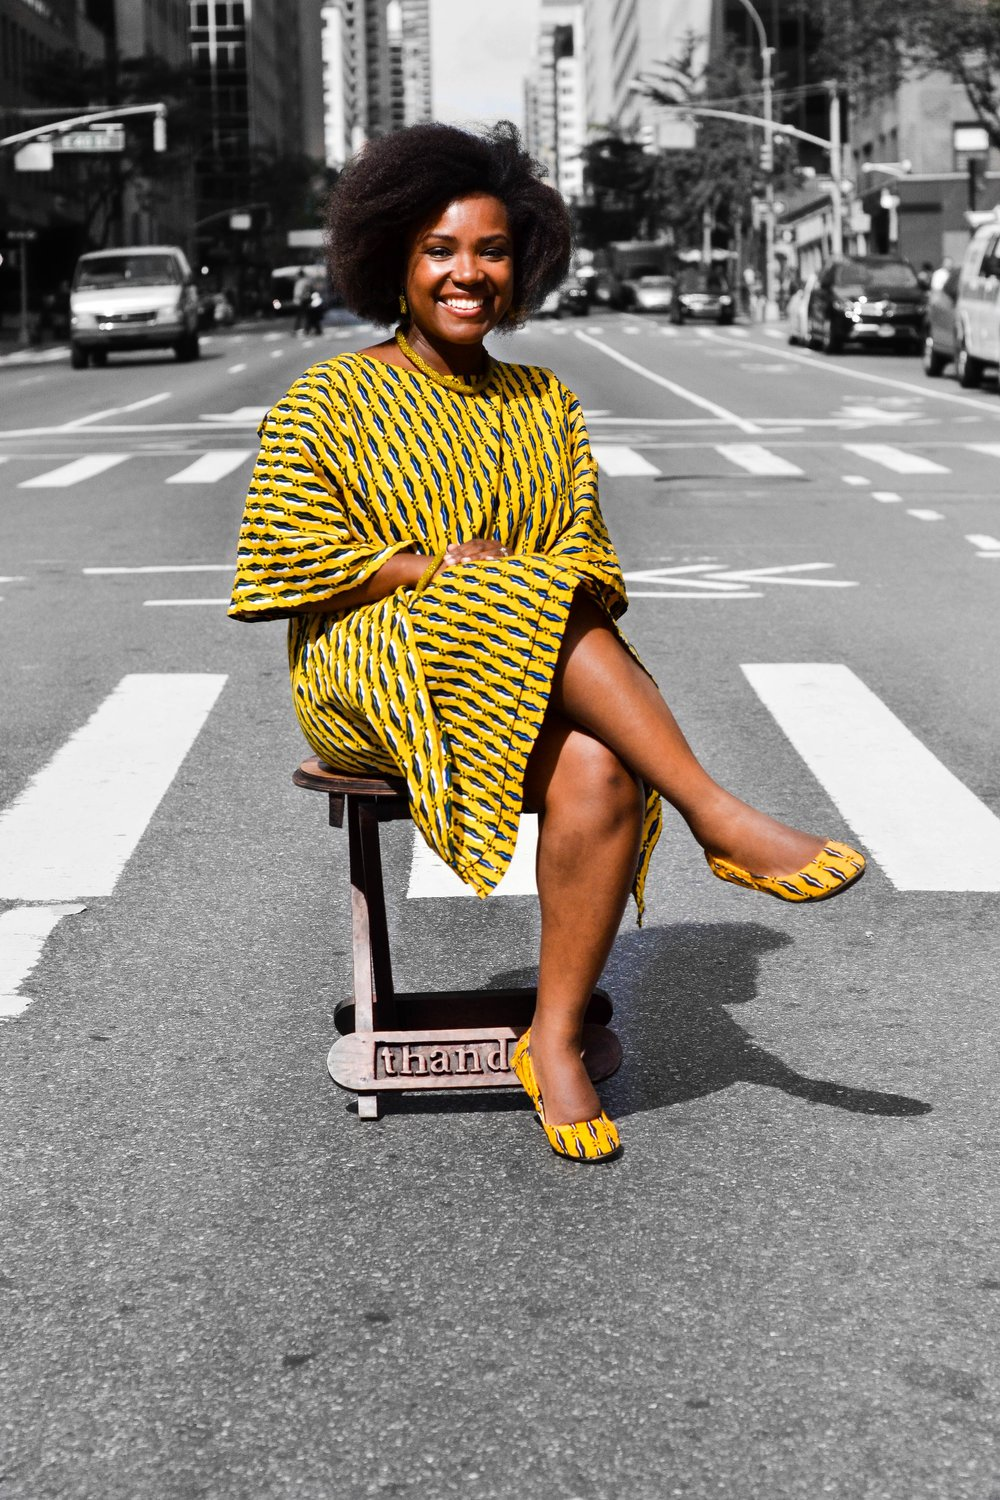 Co-founder Taffi Ayodele donning a pair of 'First Kiss' Thando's flats. This design was the first of their collection.